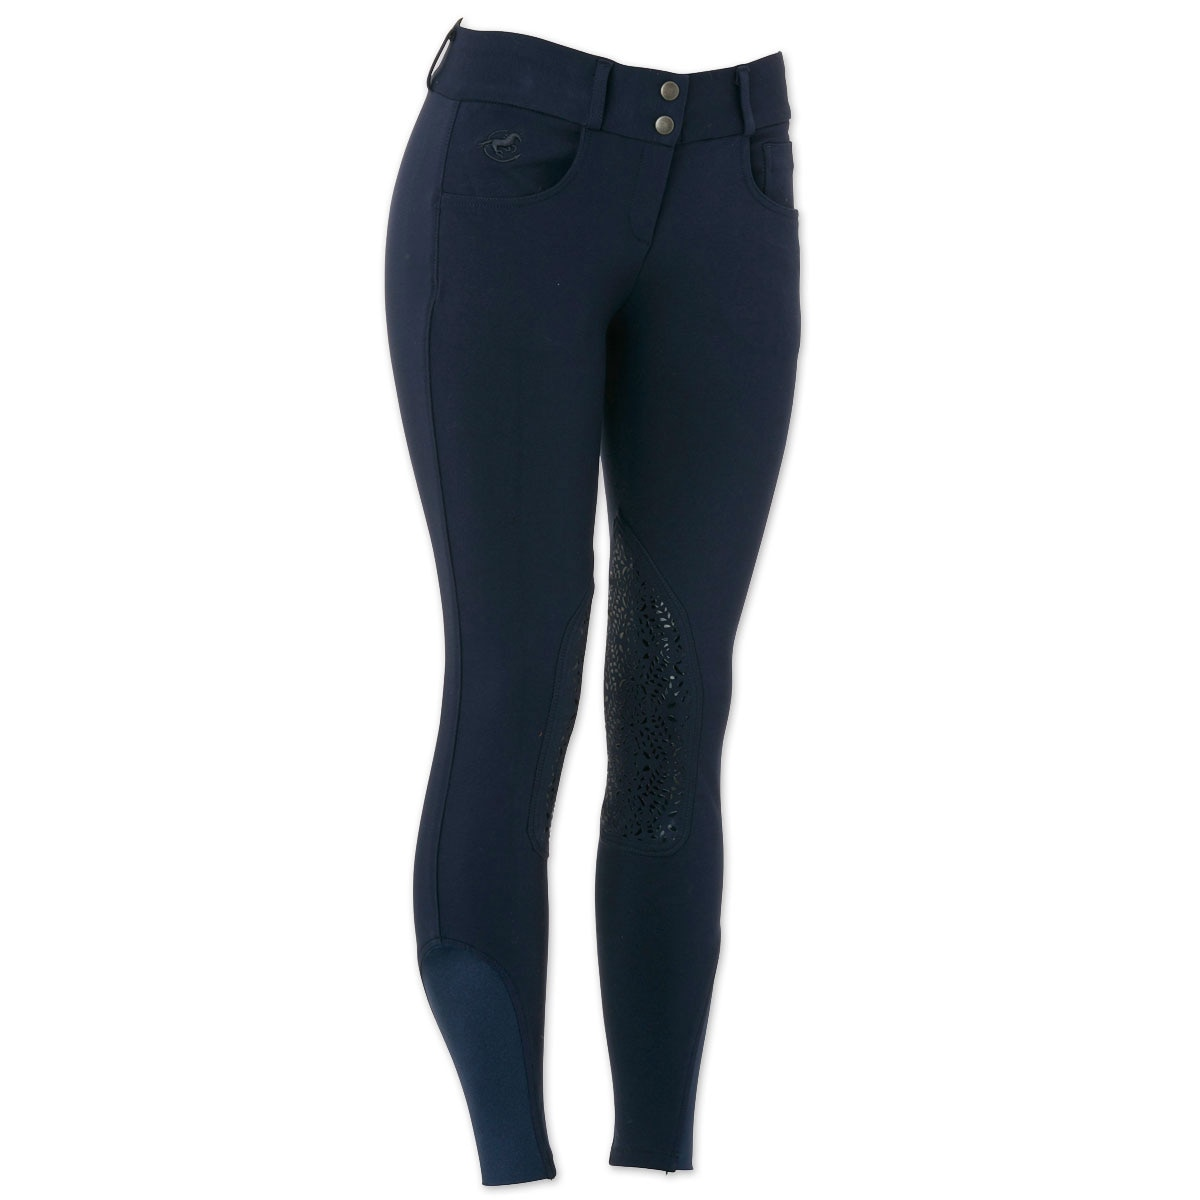 Piper Knit Breeches by SmartPak - Low Rise Knee Patch - Clearance!